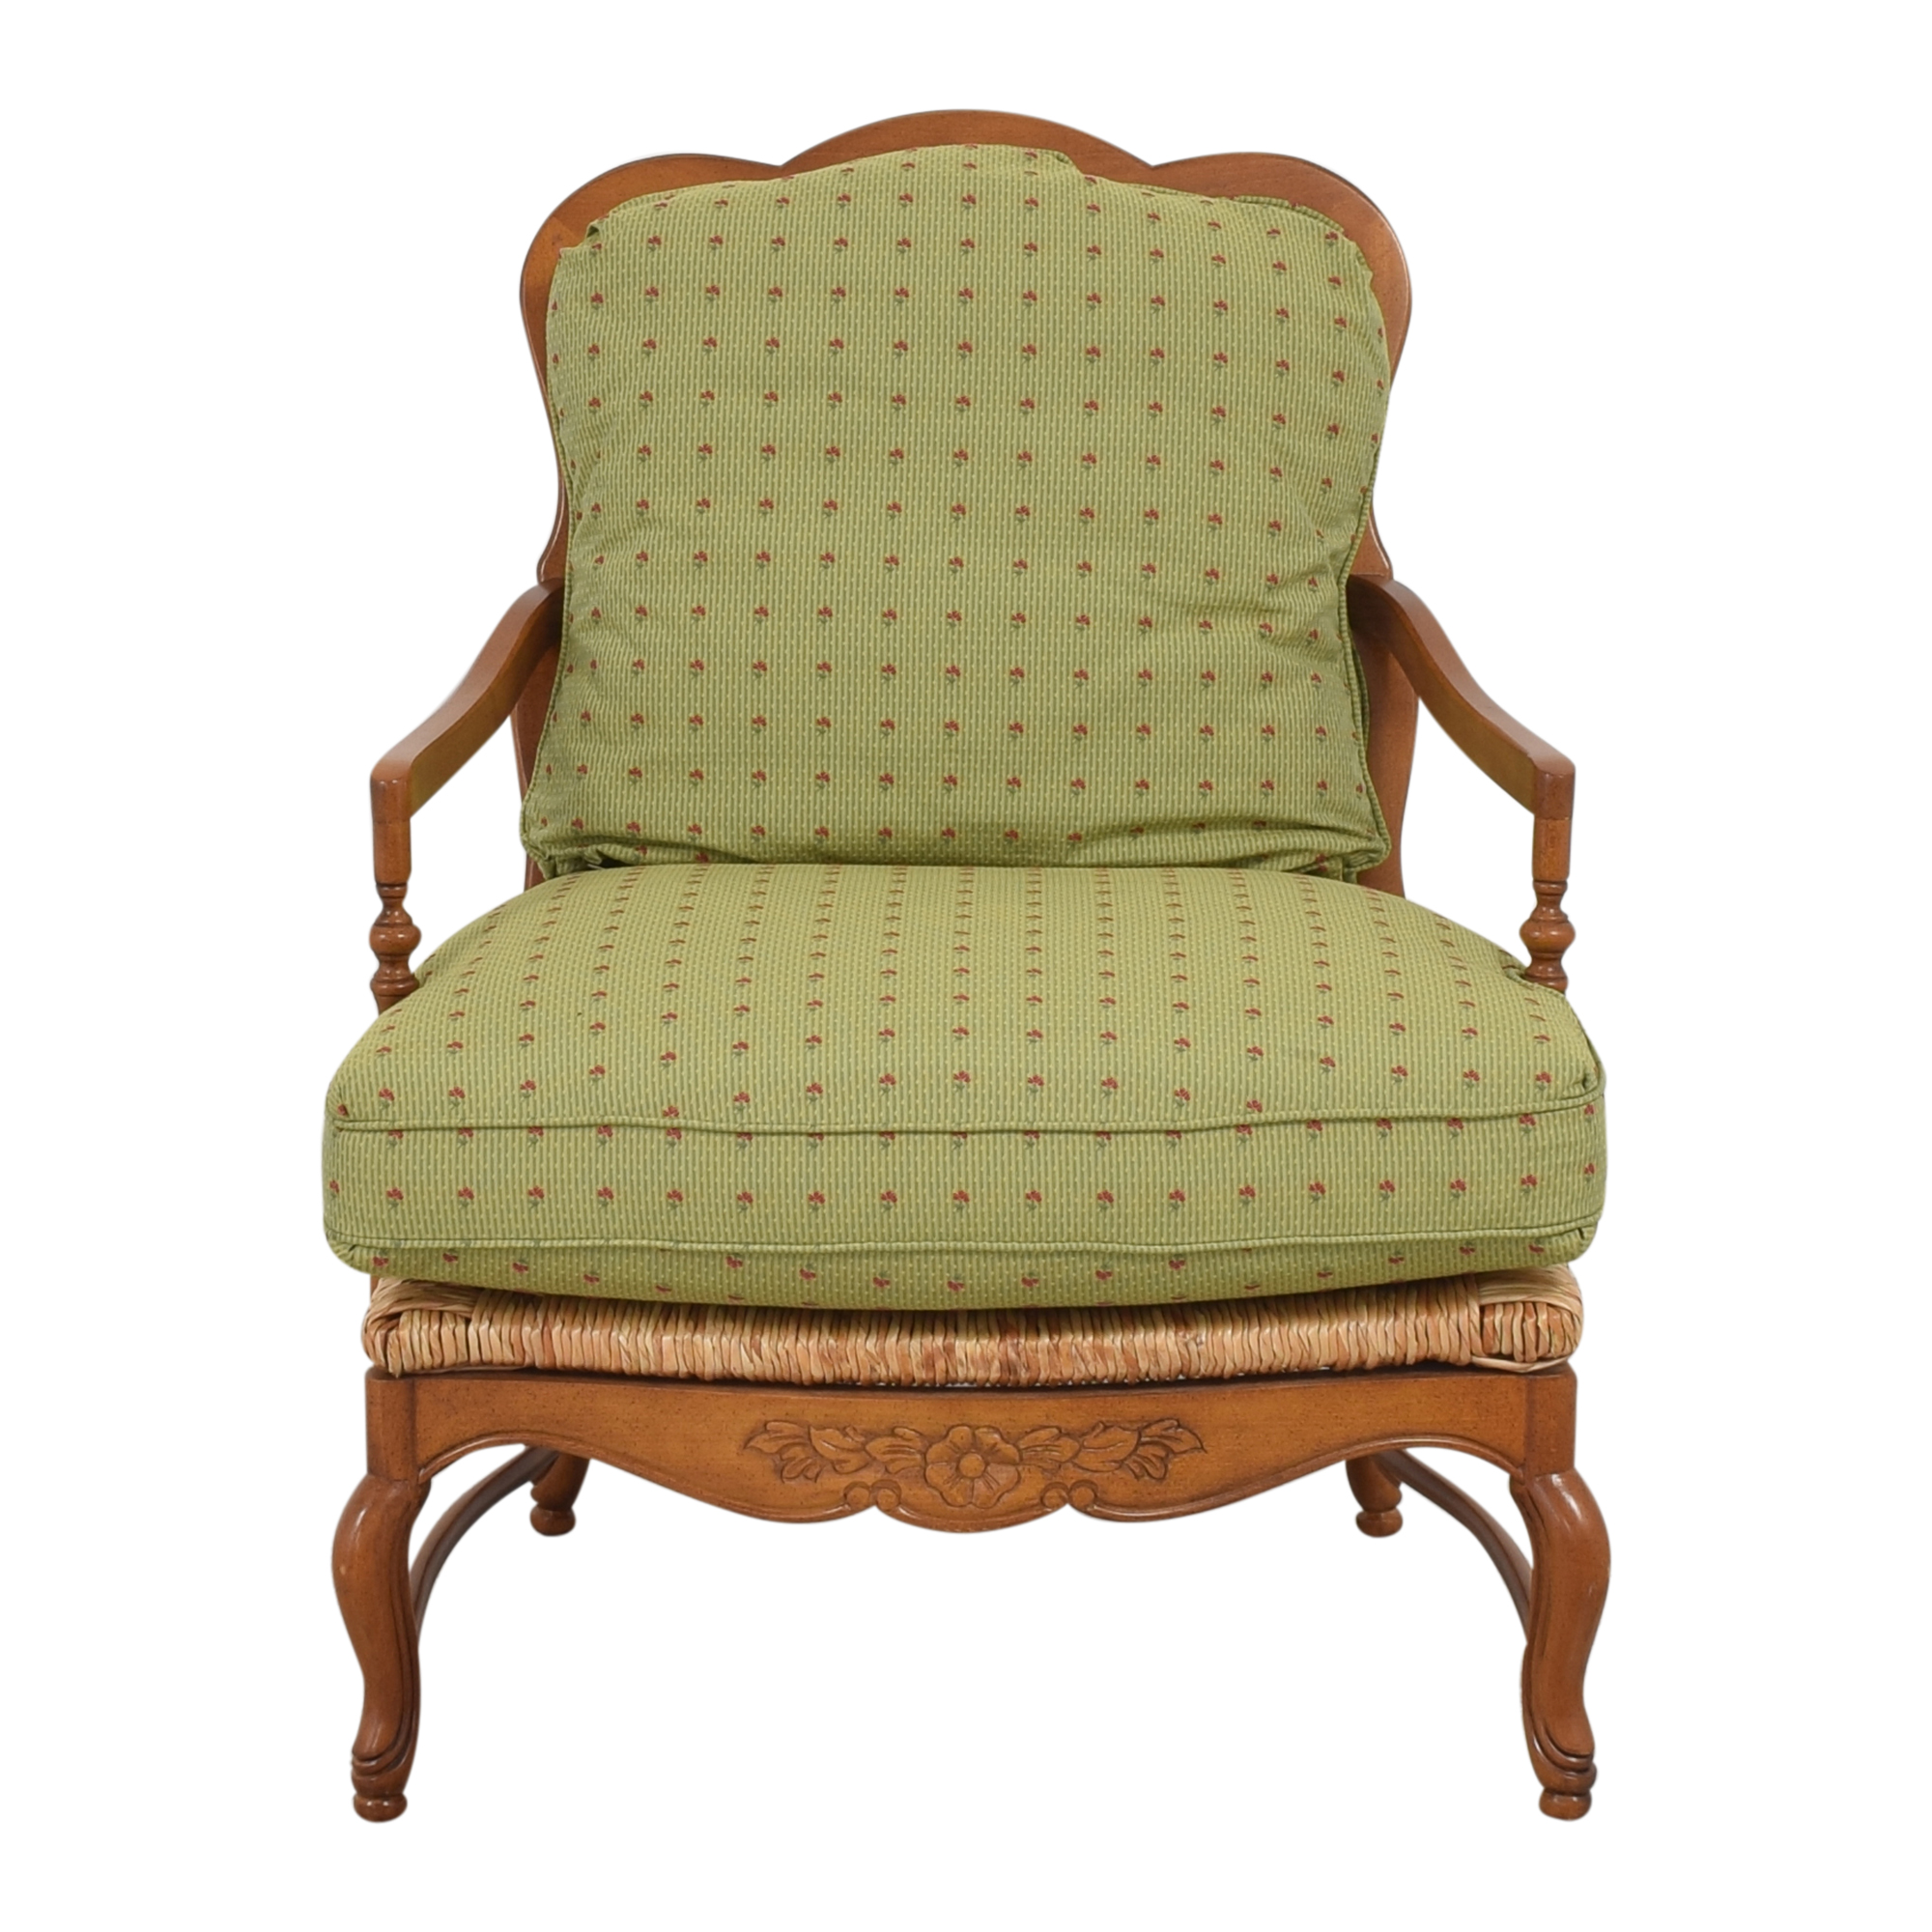 Wesley Hall Country French Chair / Chairs